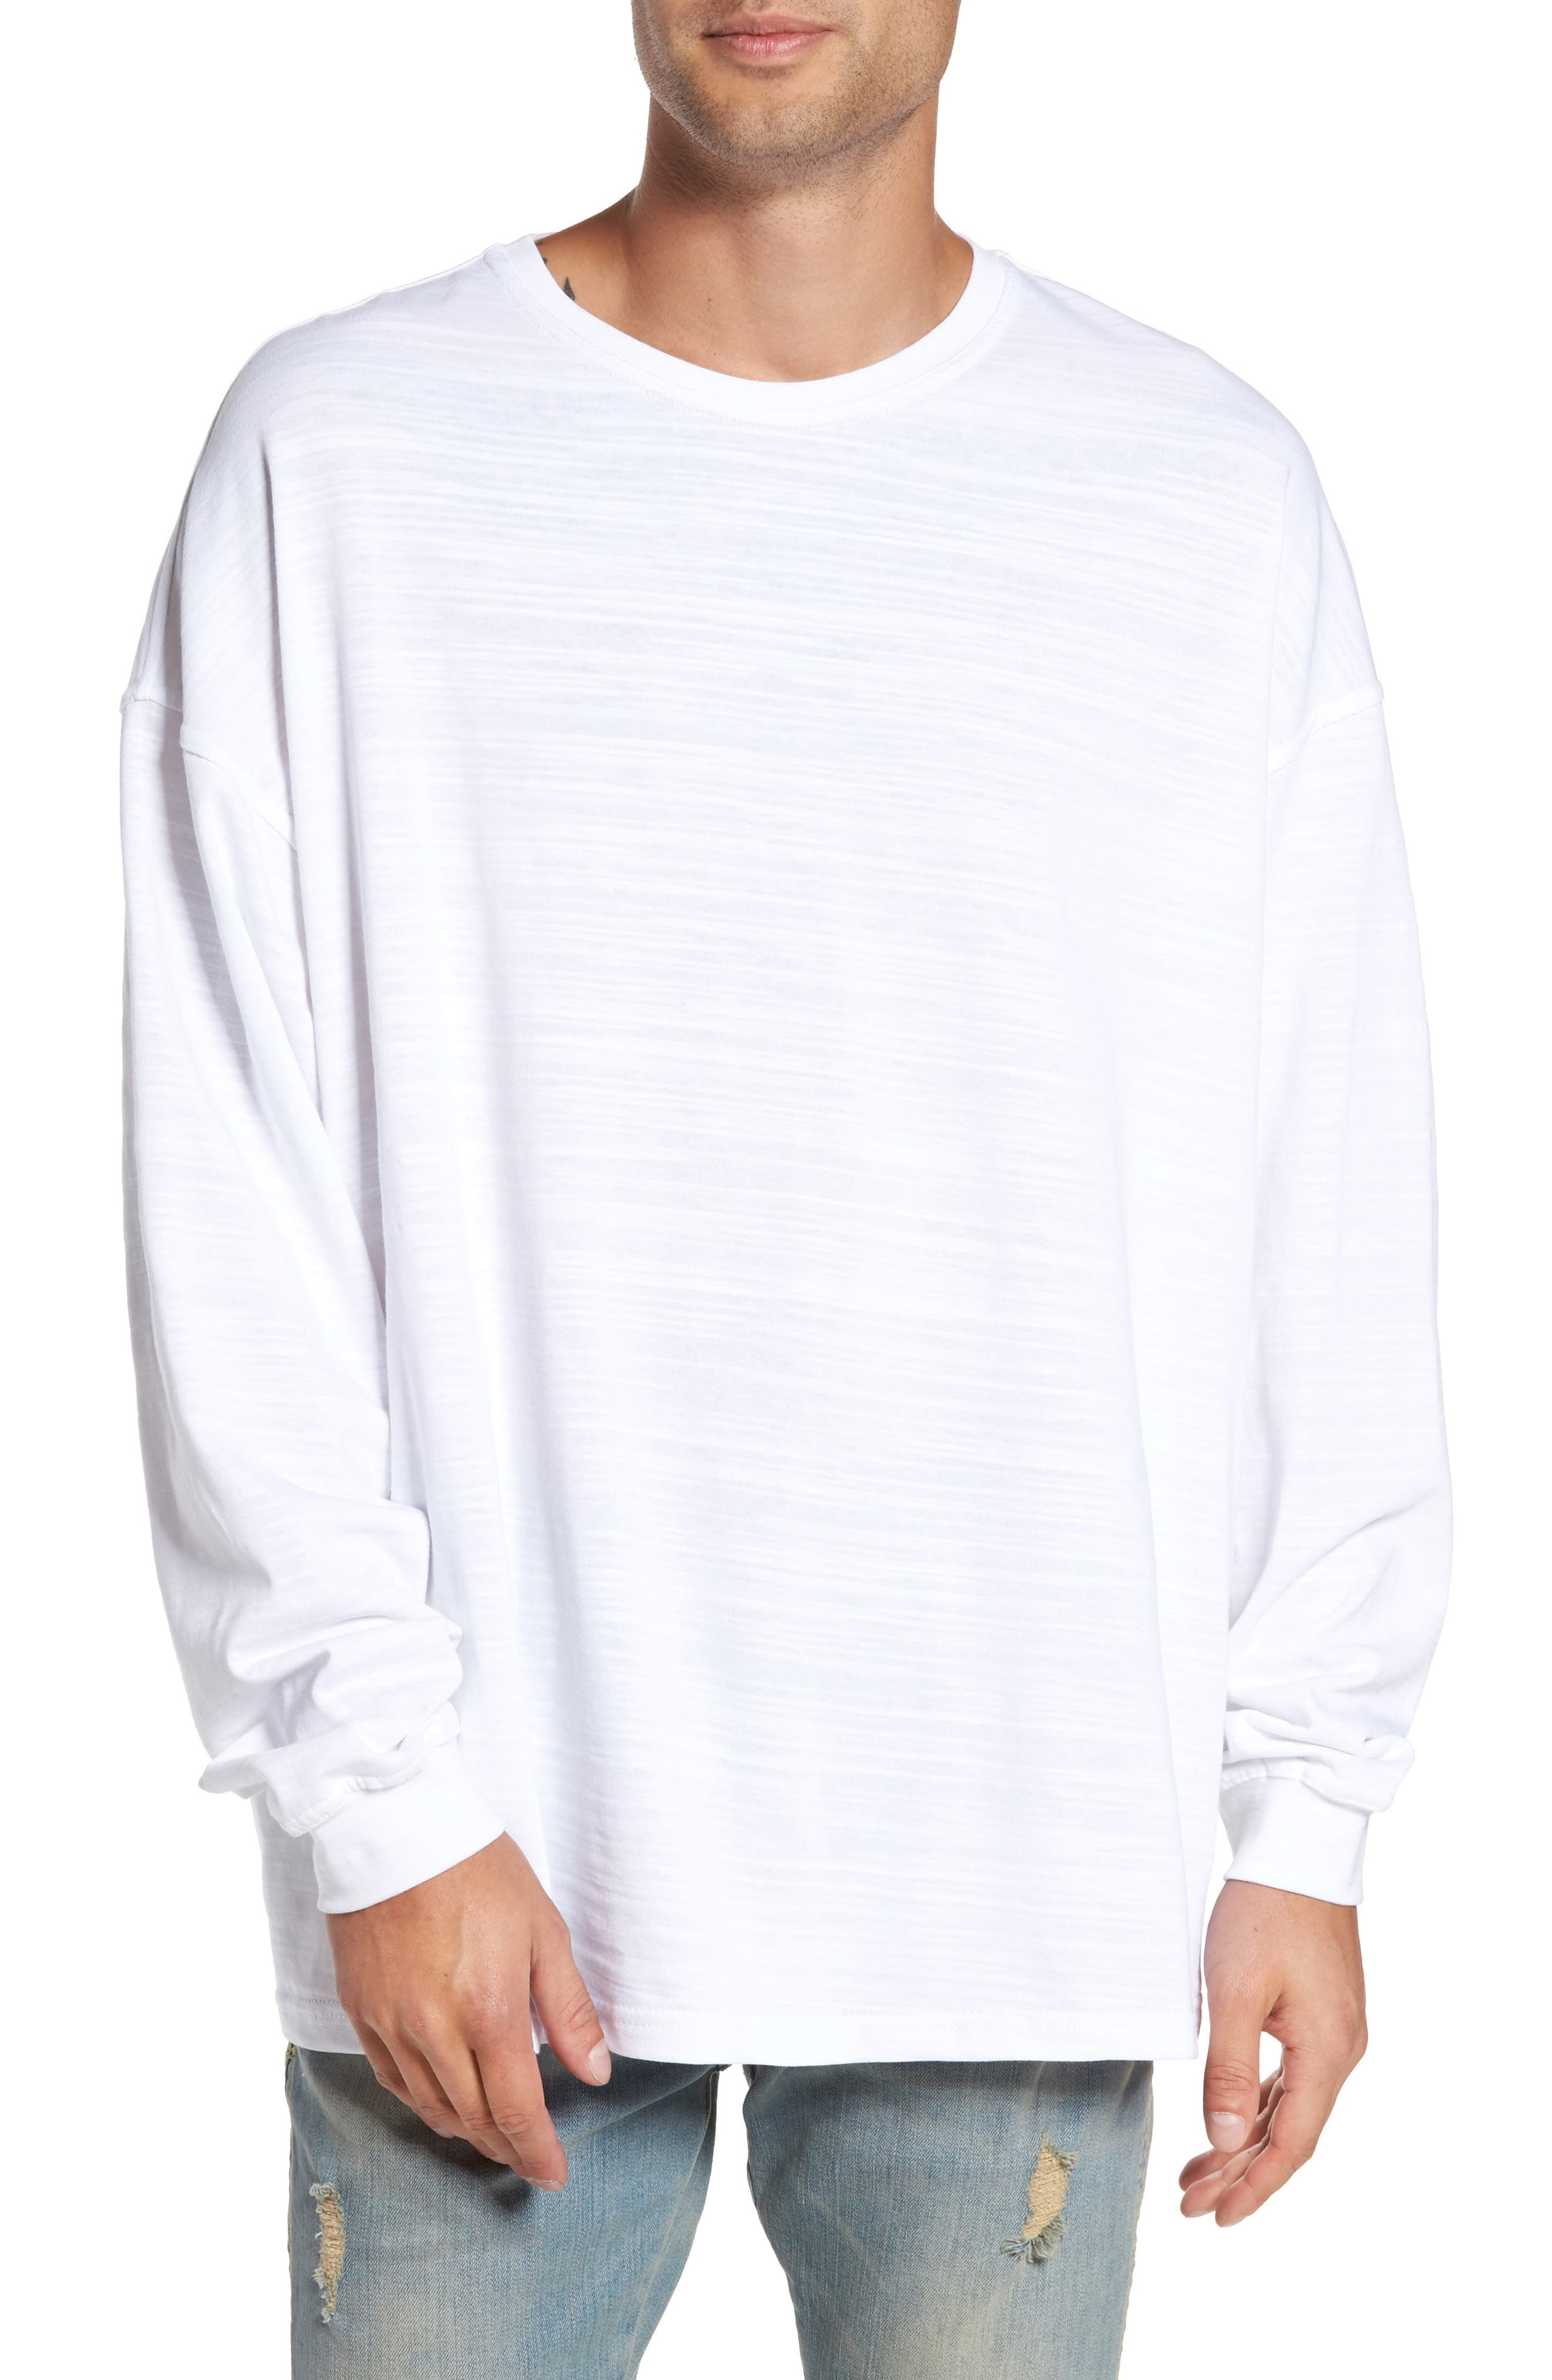 Represent Relaxed Fit Long Sleeve T-Shirt